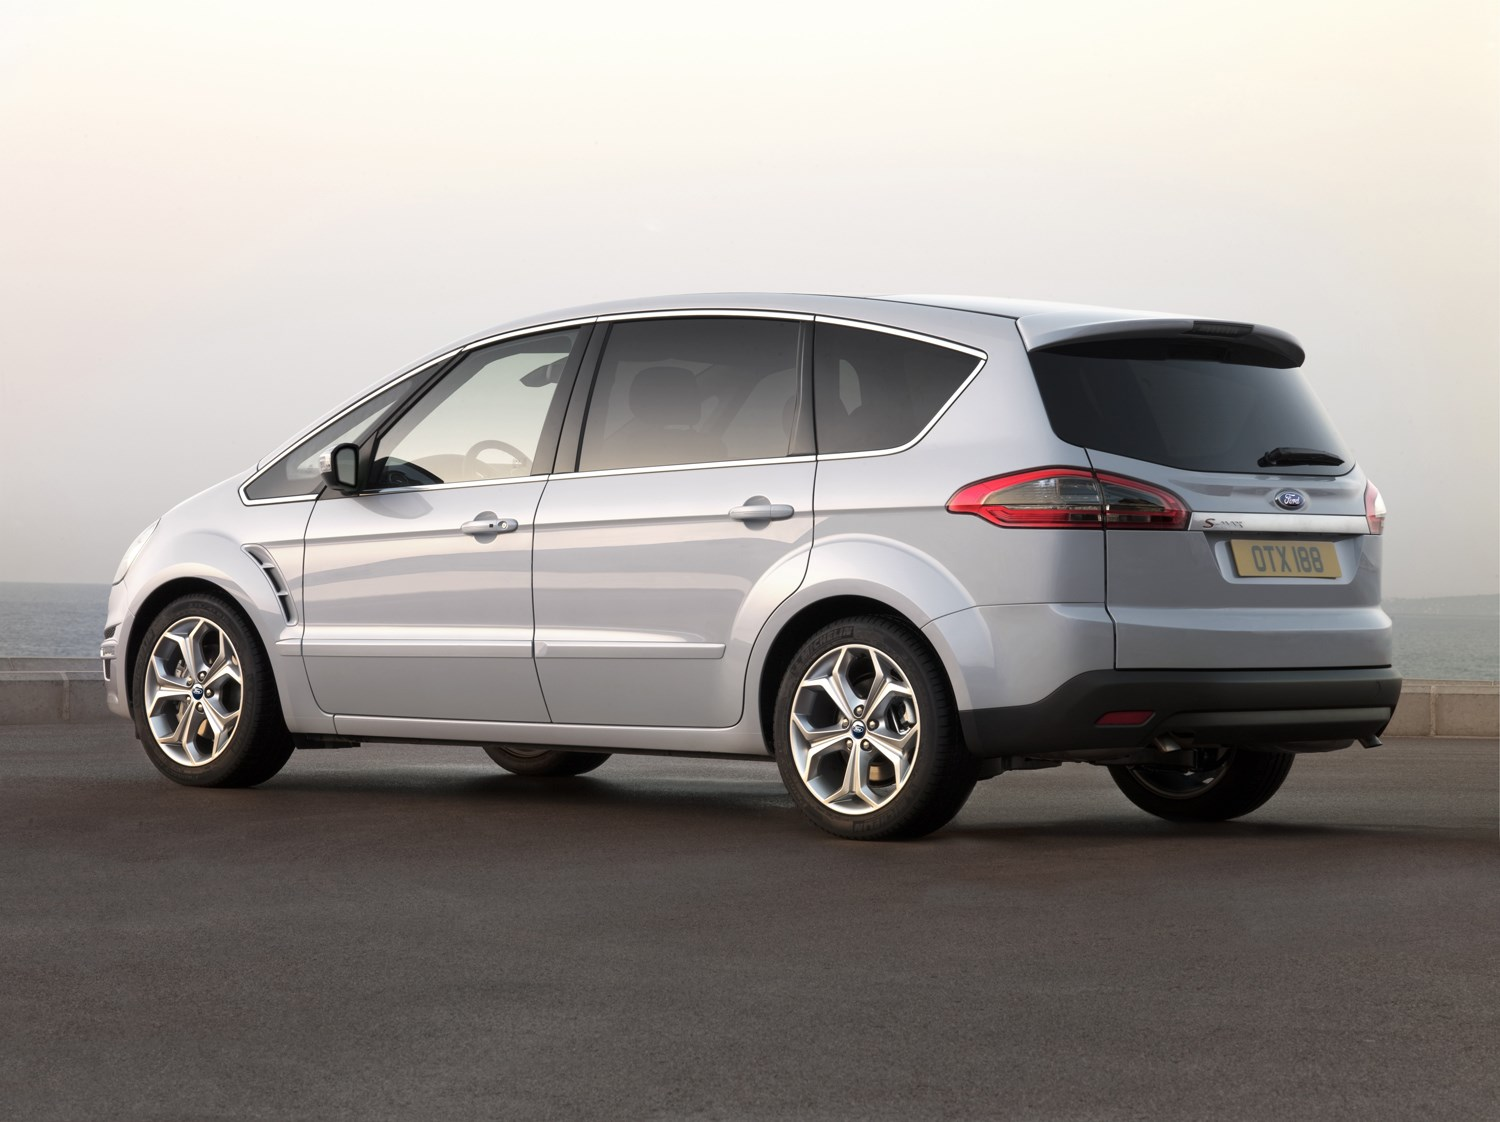 Ford Grand C Max >> Ford S-MAX Estate Review (2006 - 2014) | Parkers